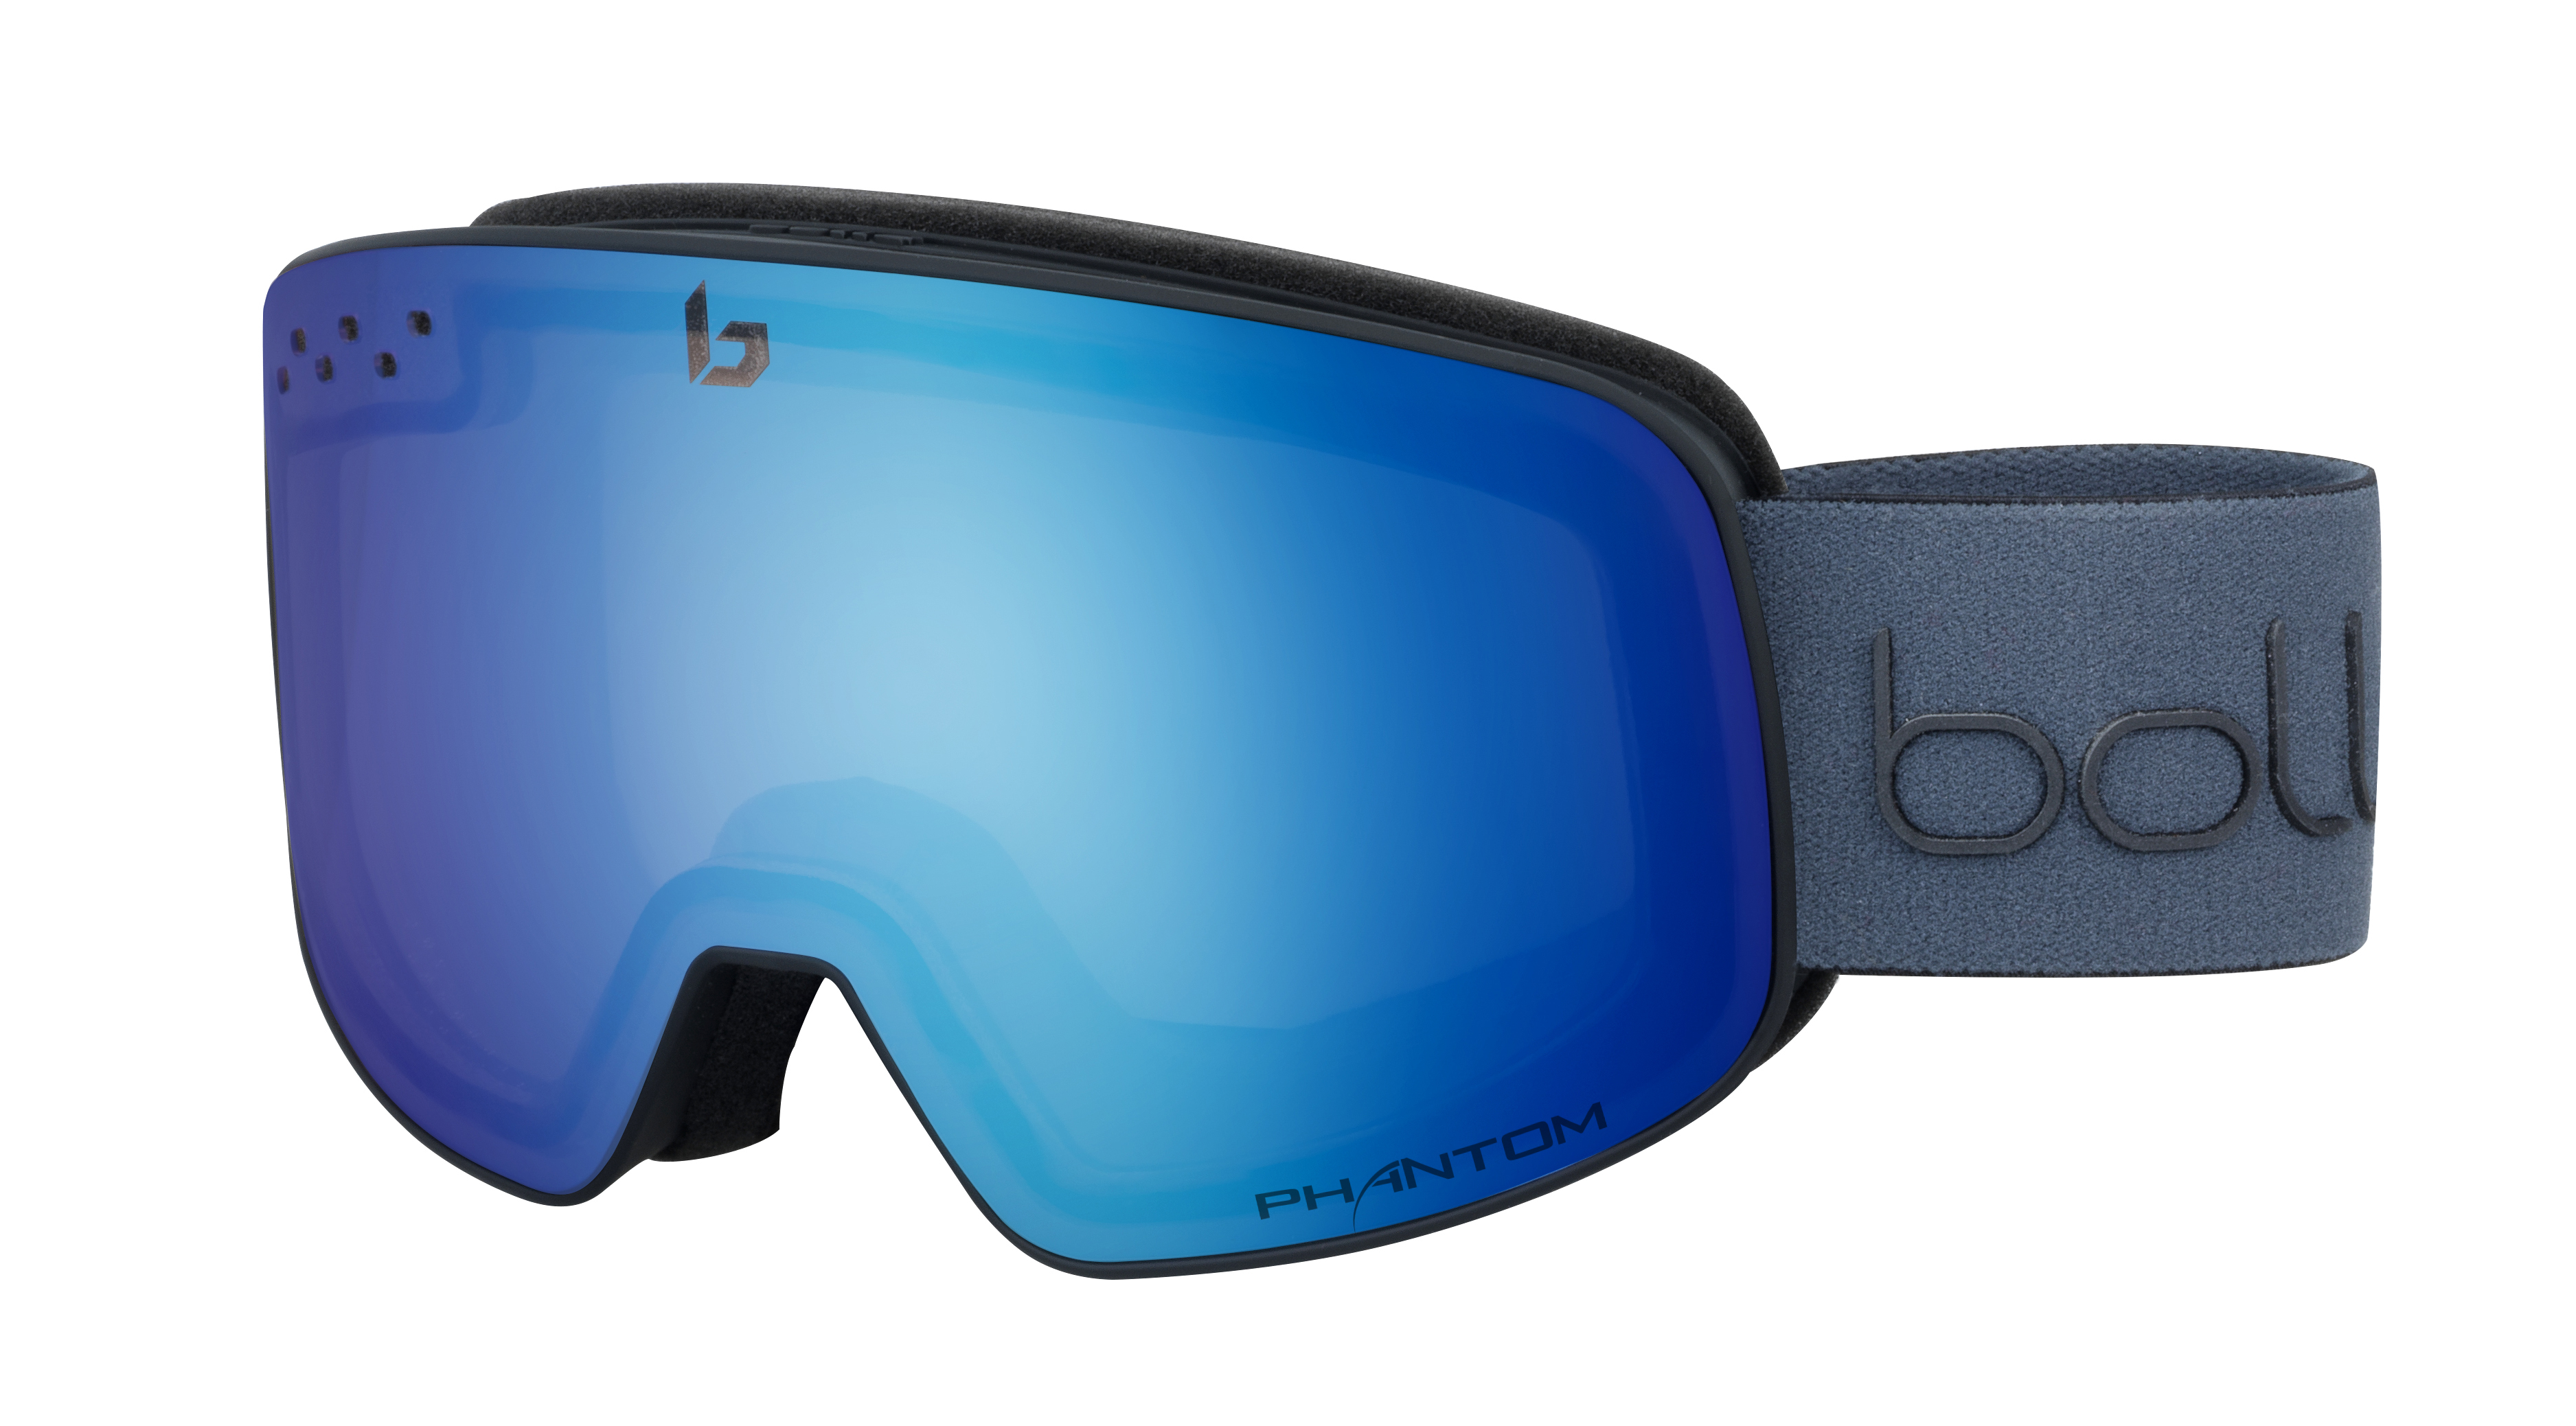 New Kit: 'NEVADA' goggles by Bolle